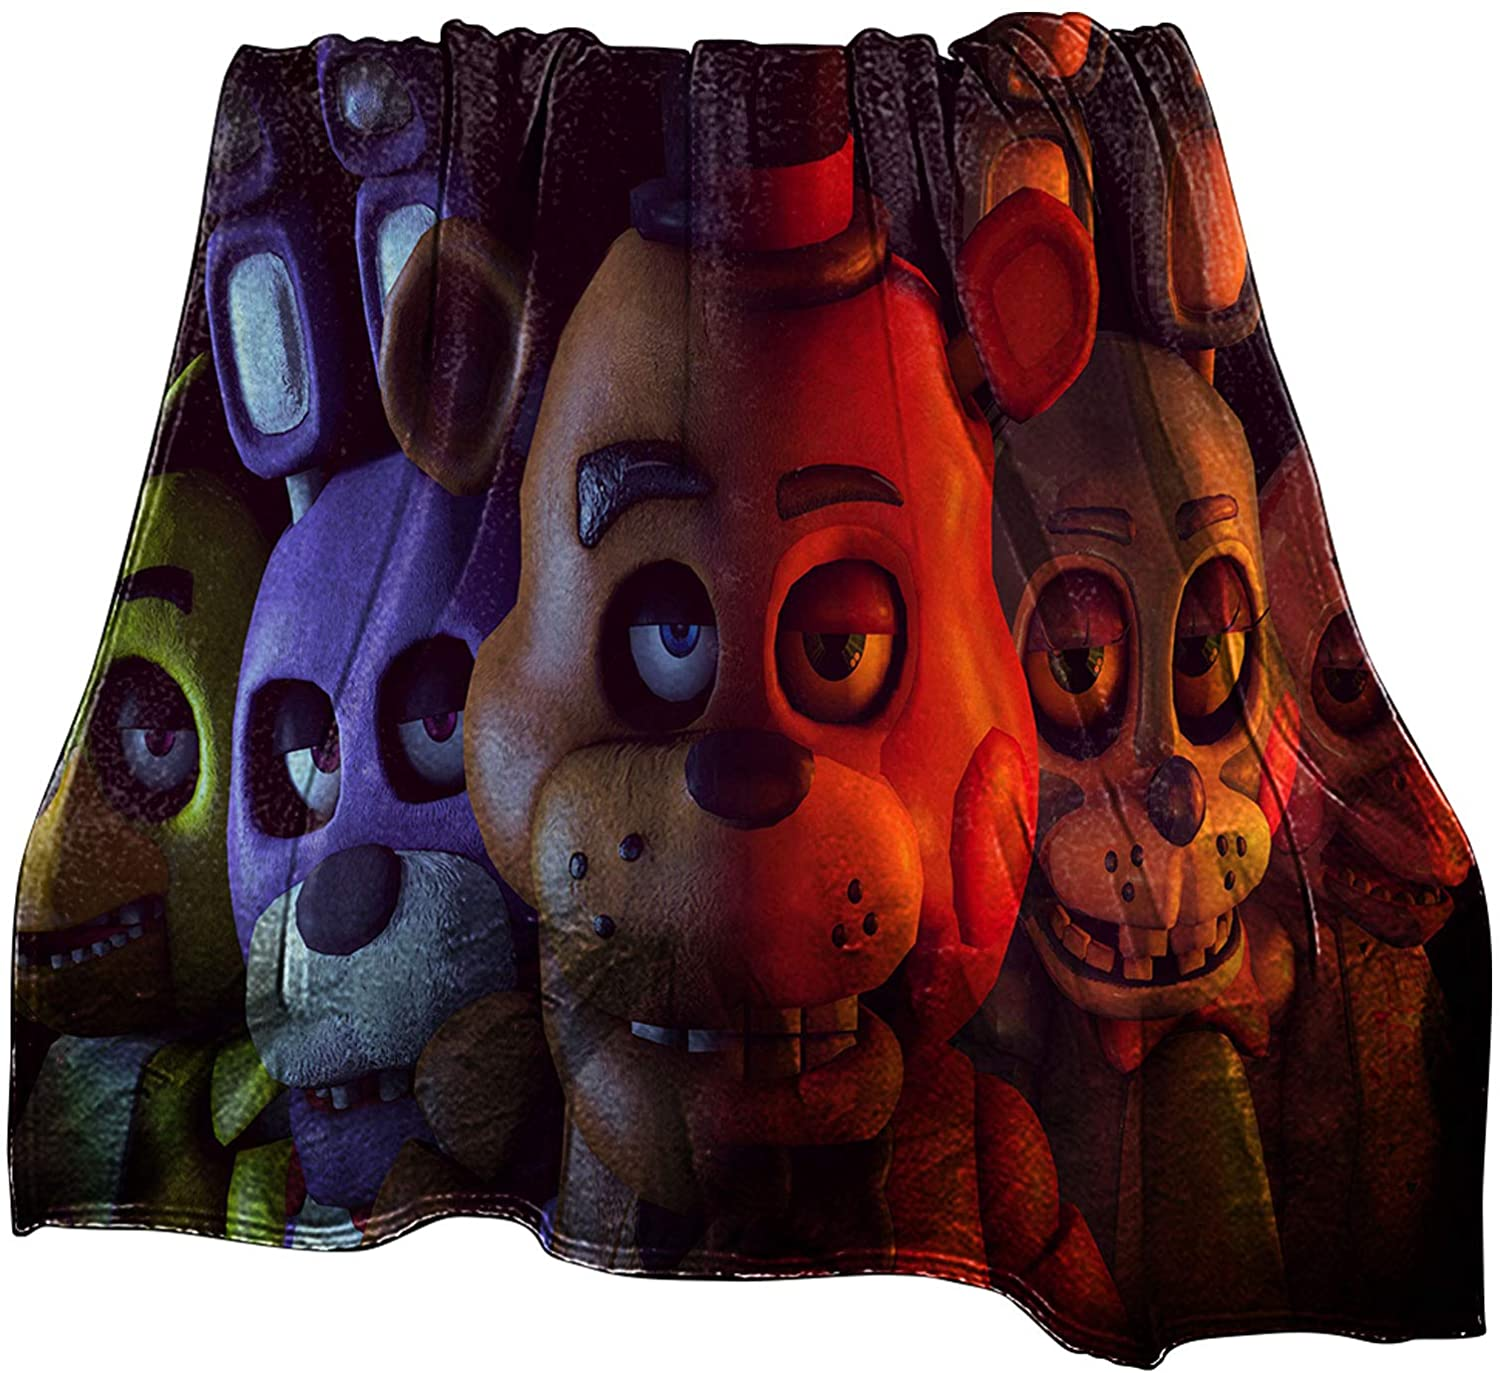 Zhongkaihua FNAF Blanket Five Nights at Freddy's Flannel Blanket Plush Novelty Printed Throw Blanket Fall Winter Blankets for Indoors Outdoors Travel Home